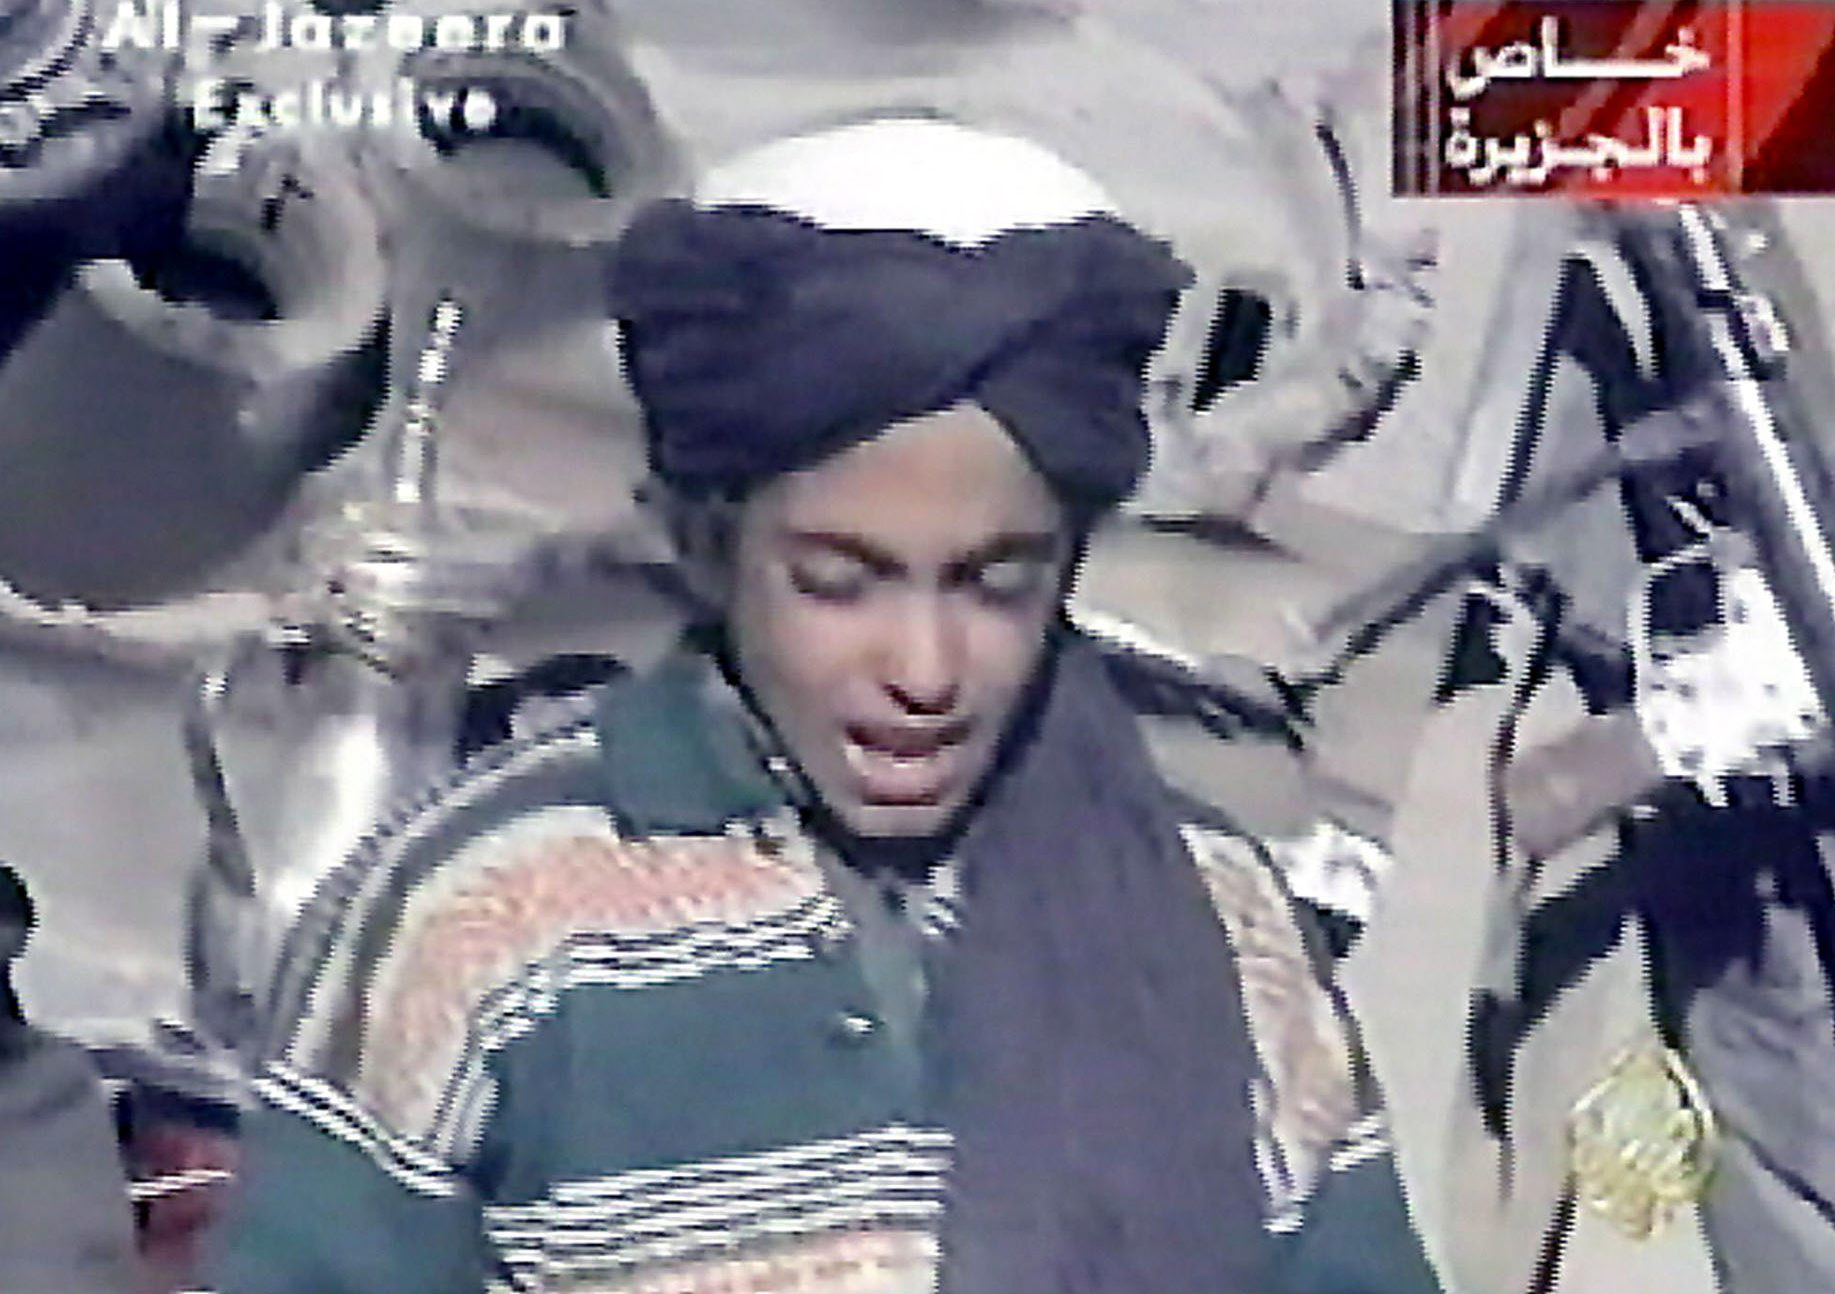 US offers $1m reward for capture of bin Laden son